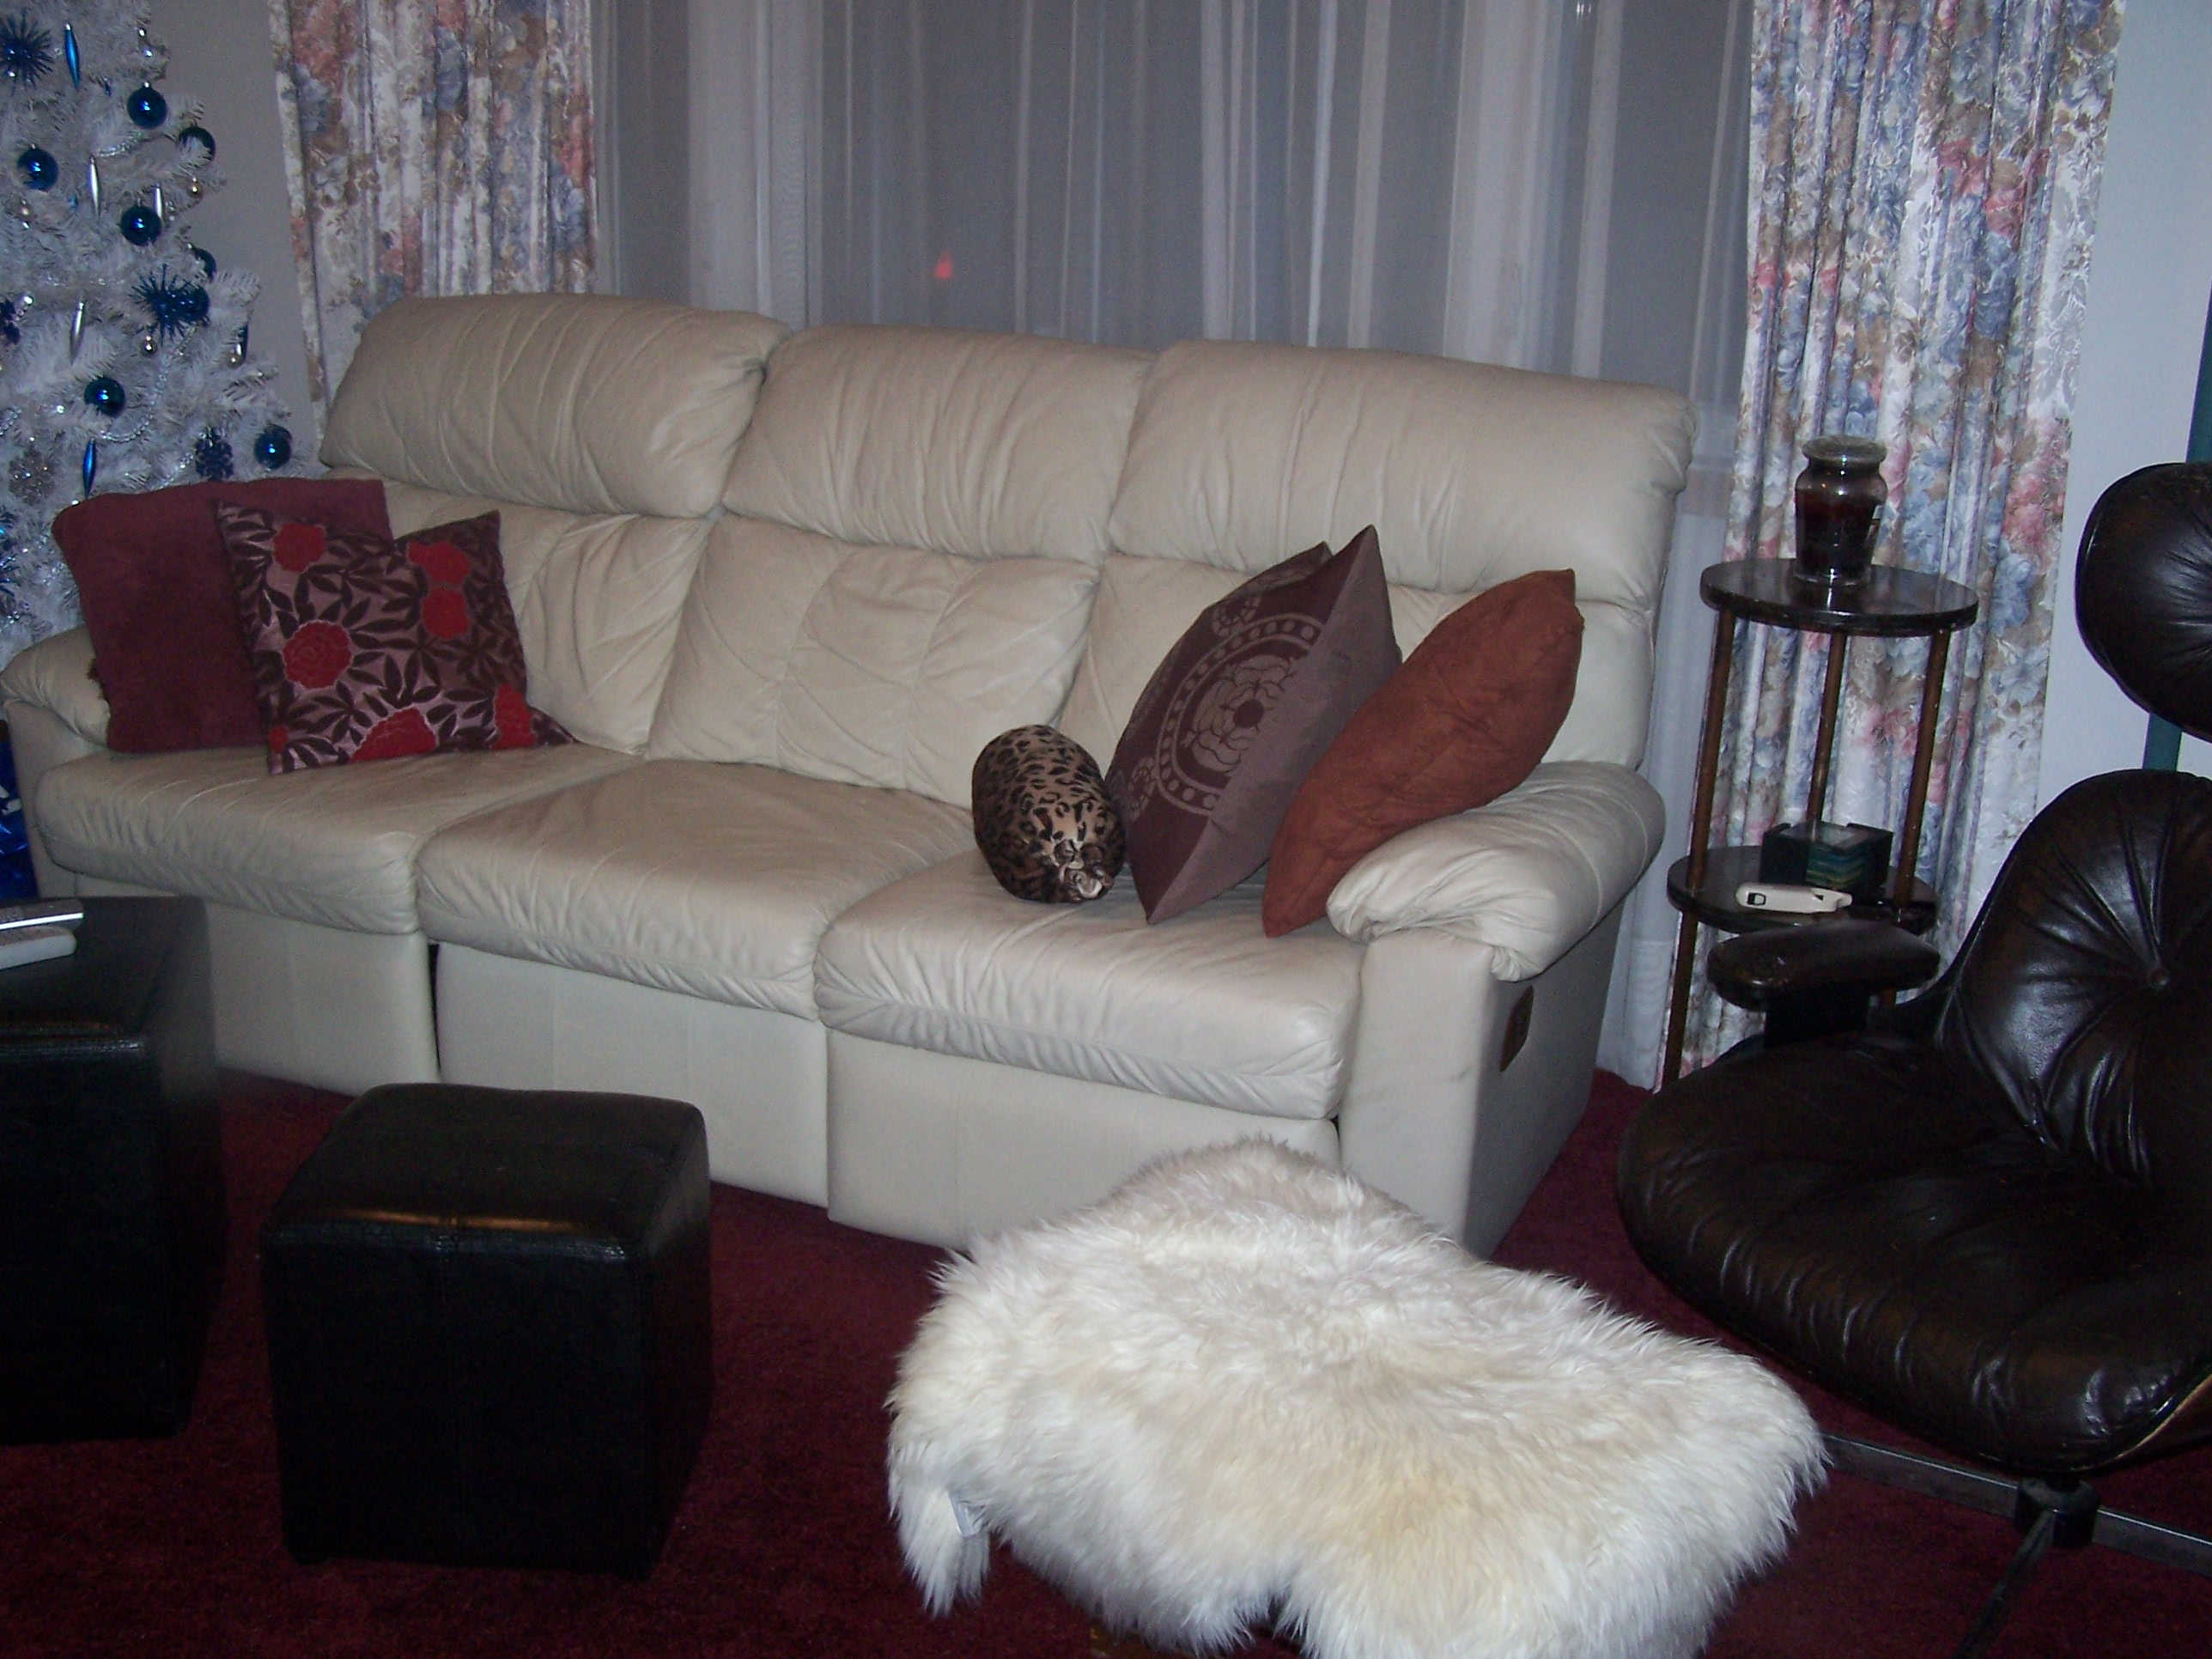 The couch is directly facing the TV.  We still want to replace those flowery curtains, but the couch is comfy and cute- we got lucky for a hand-me-down!